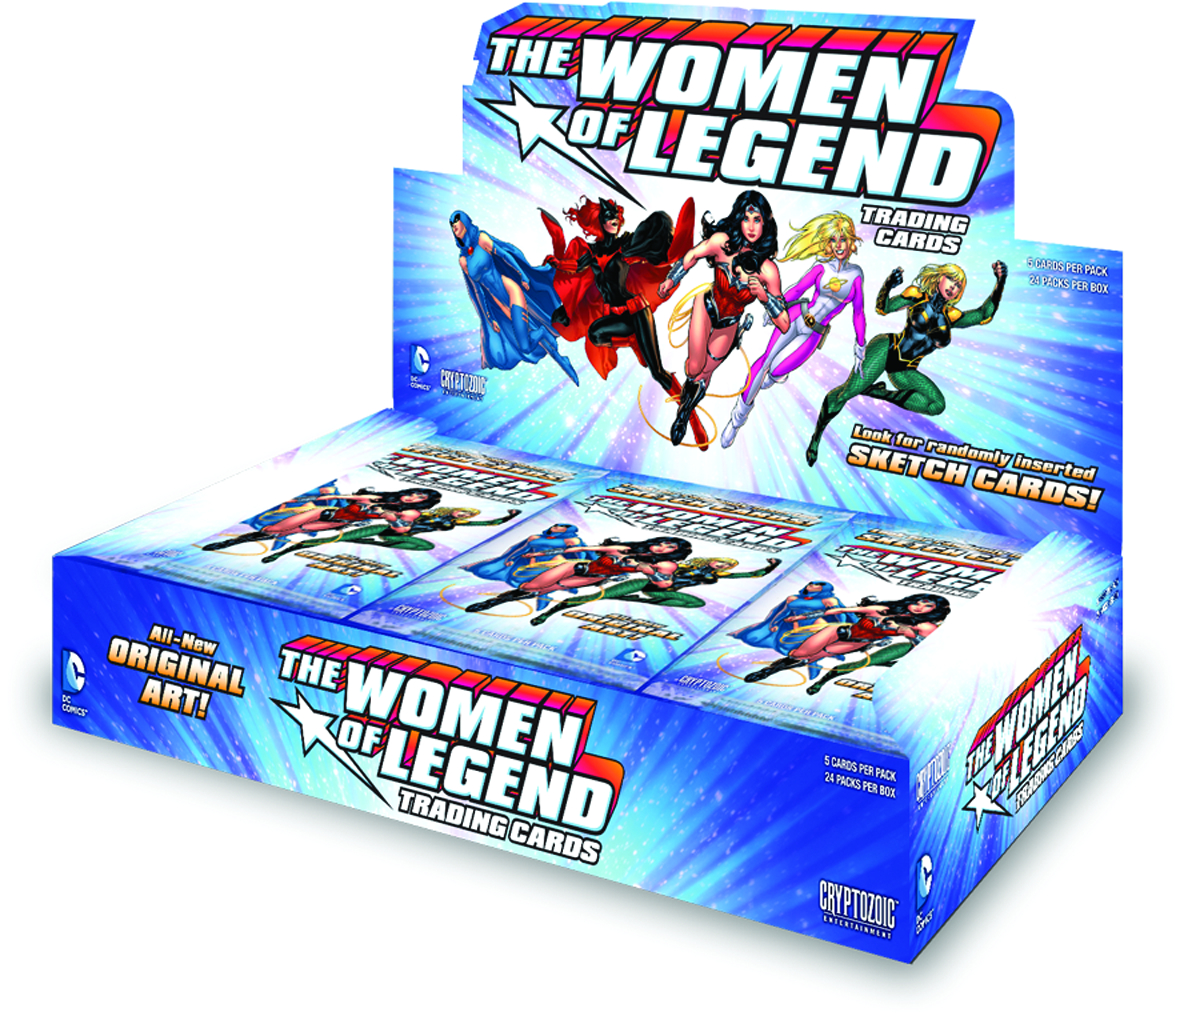 DC WOMEN OF LEGEND T/C BOX